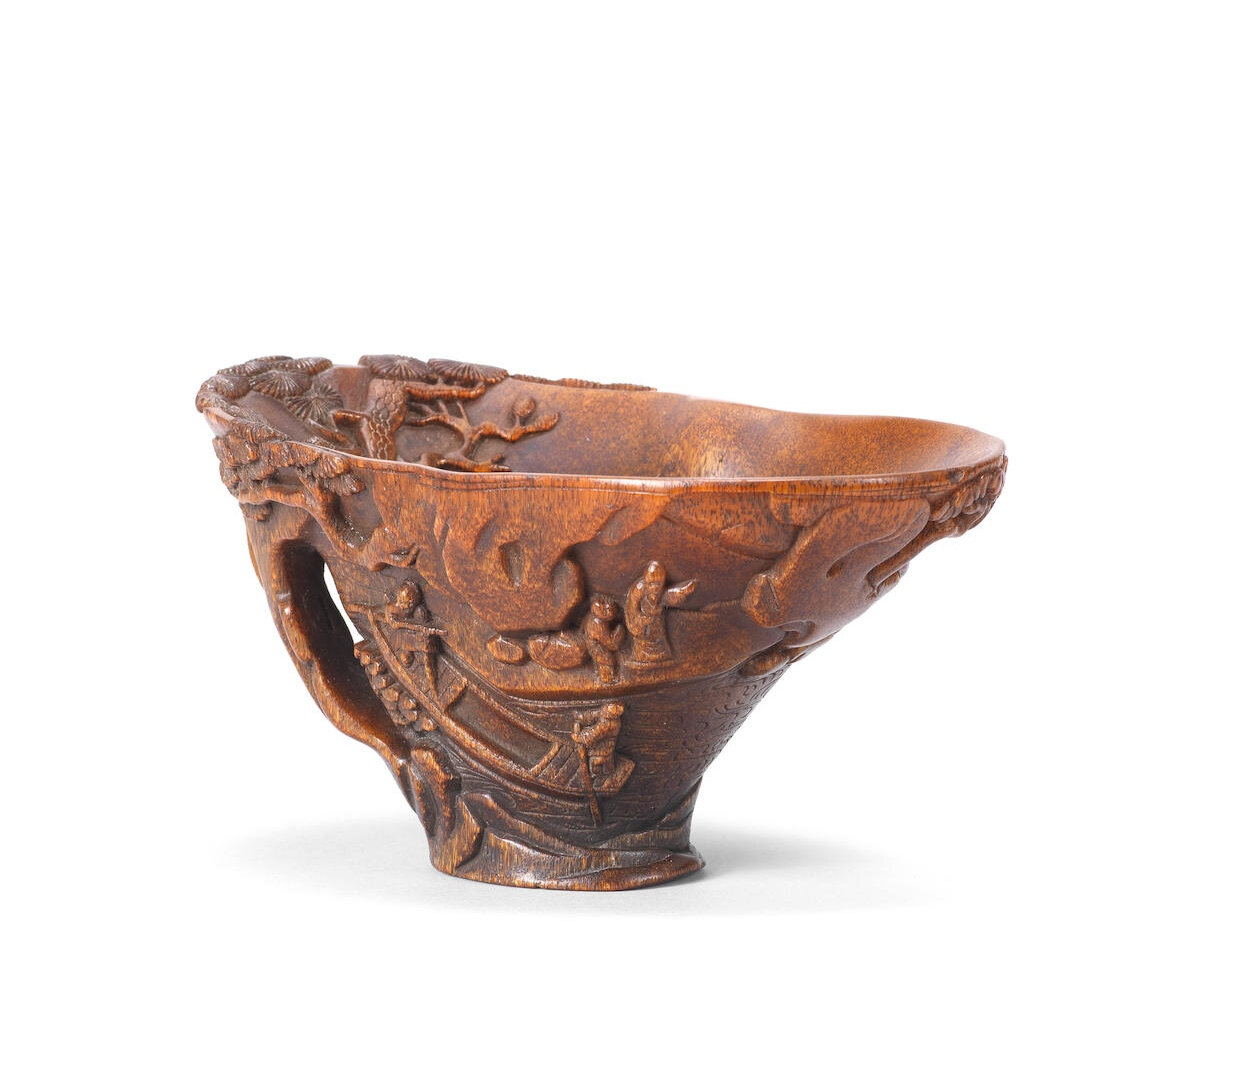 A rhinoceros horn 'scholar and pine' libation cup, 17th-18th century